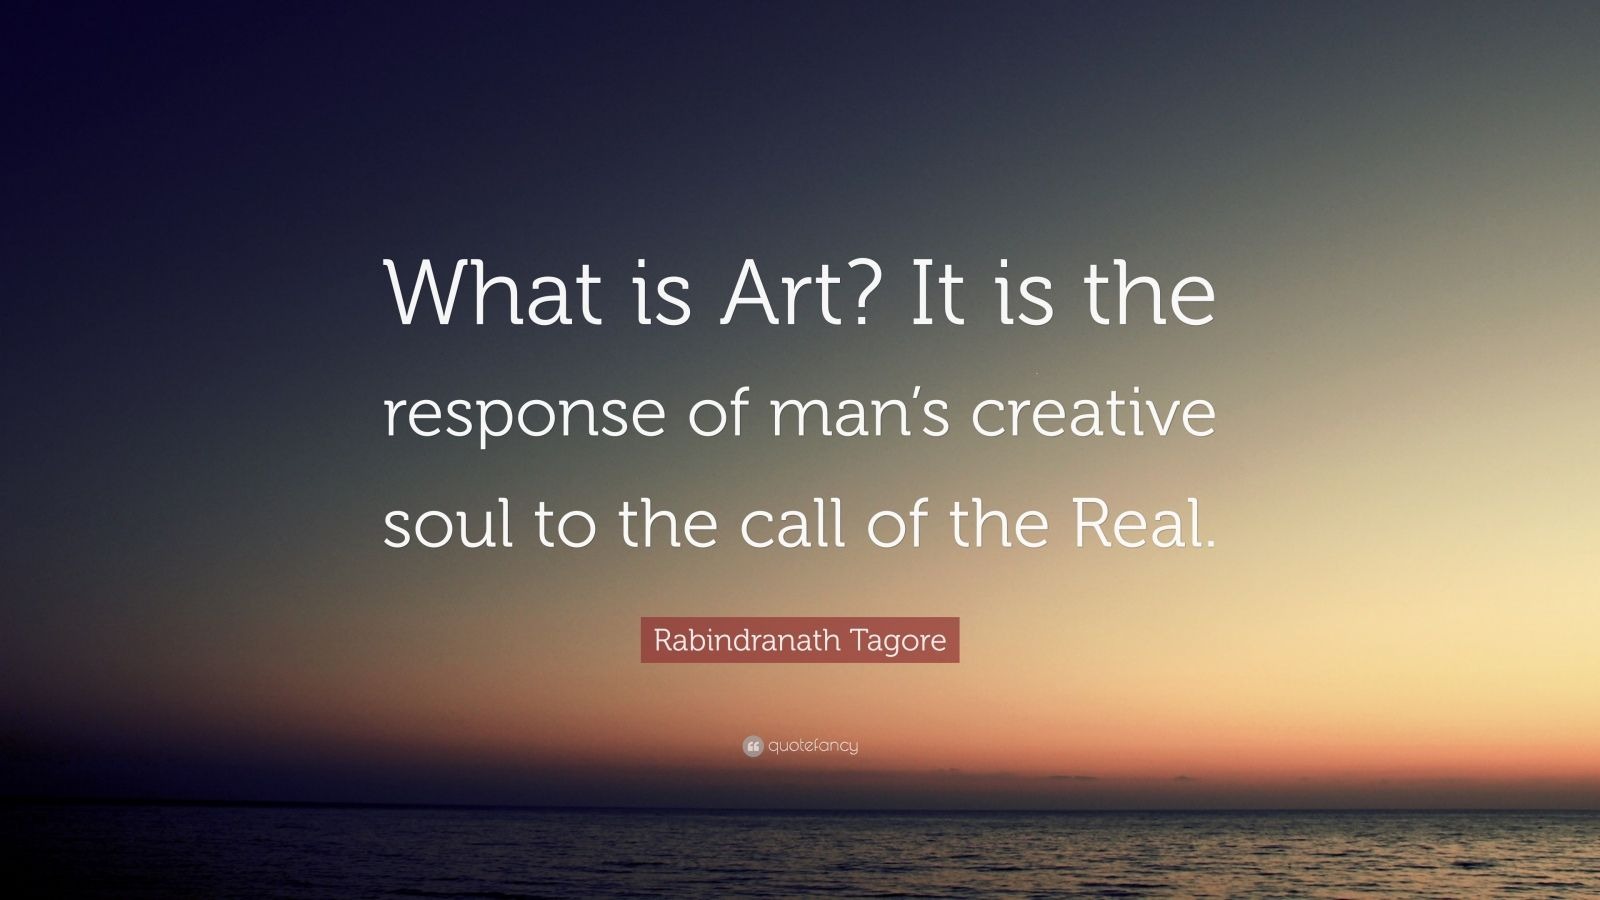 """Rabindranath Tagore Quote: """"What is Art? It is the response of man's creative soul to the call of the Real."""""""